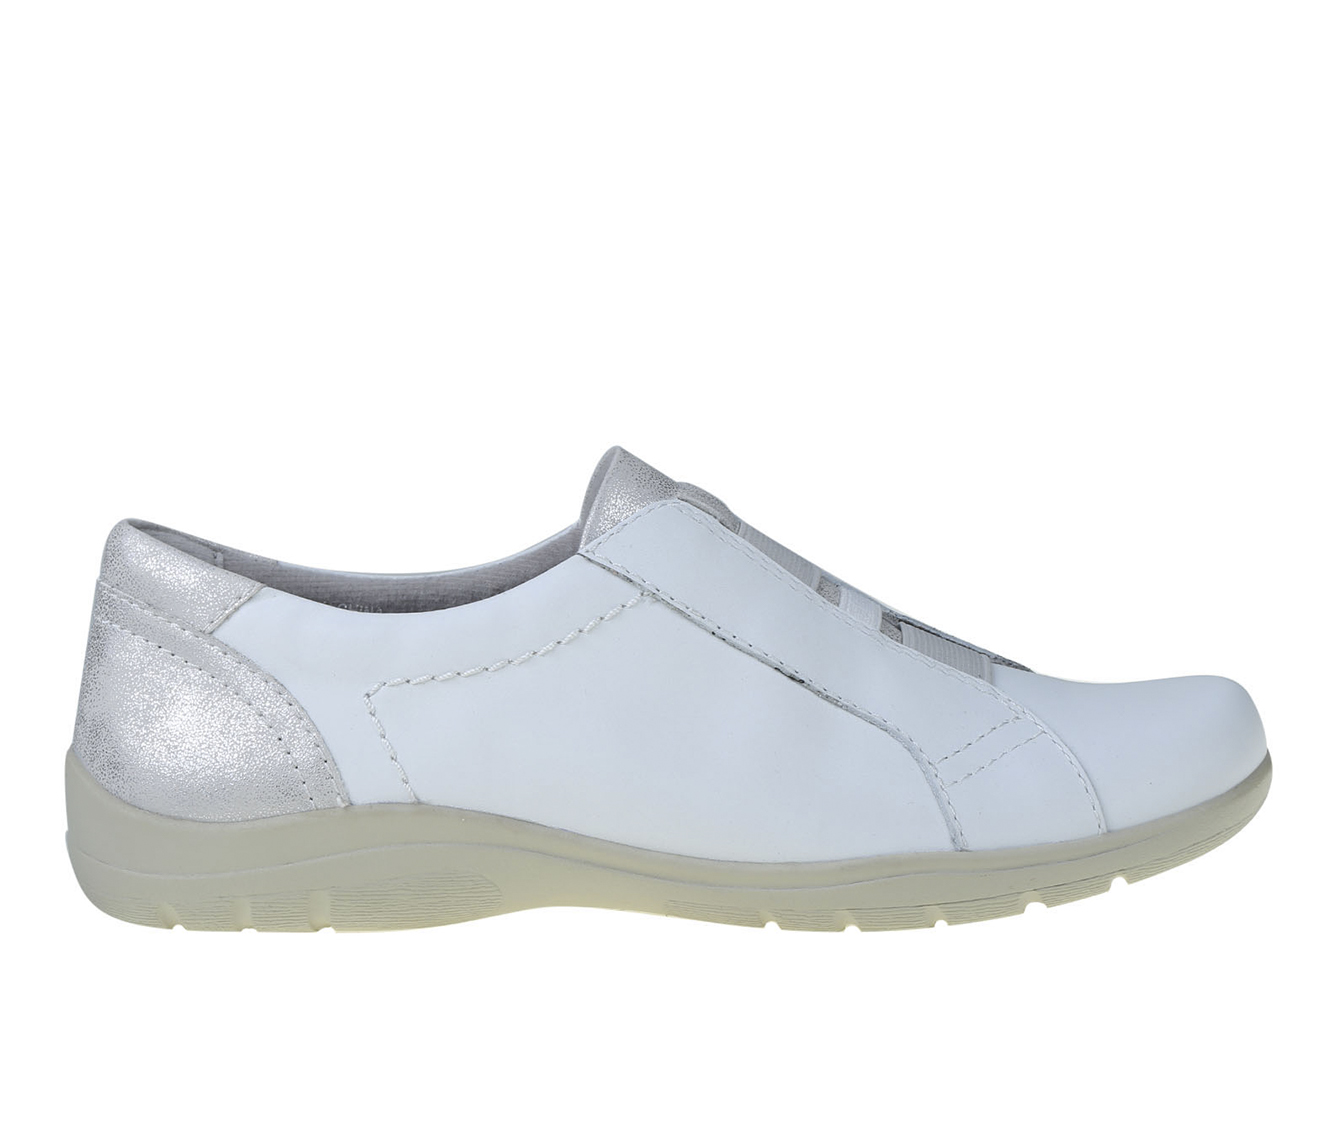 Earth Origins Rapid Toma Women's Shoe (White Leather)